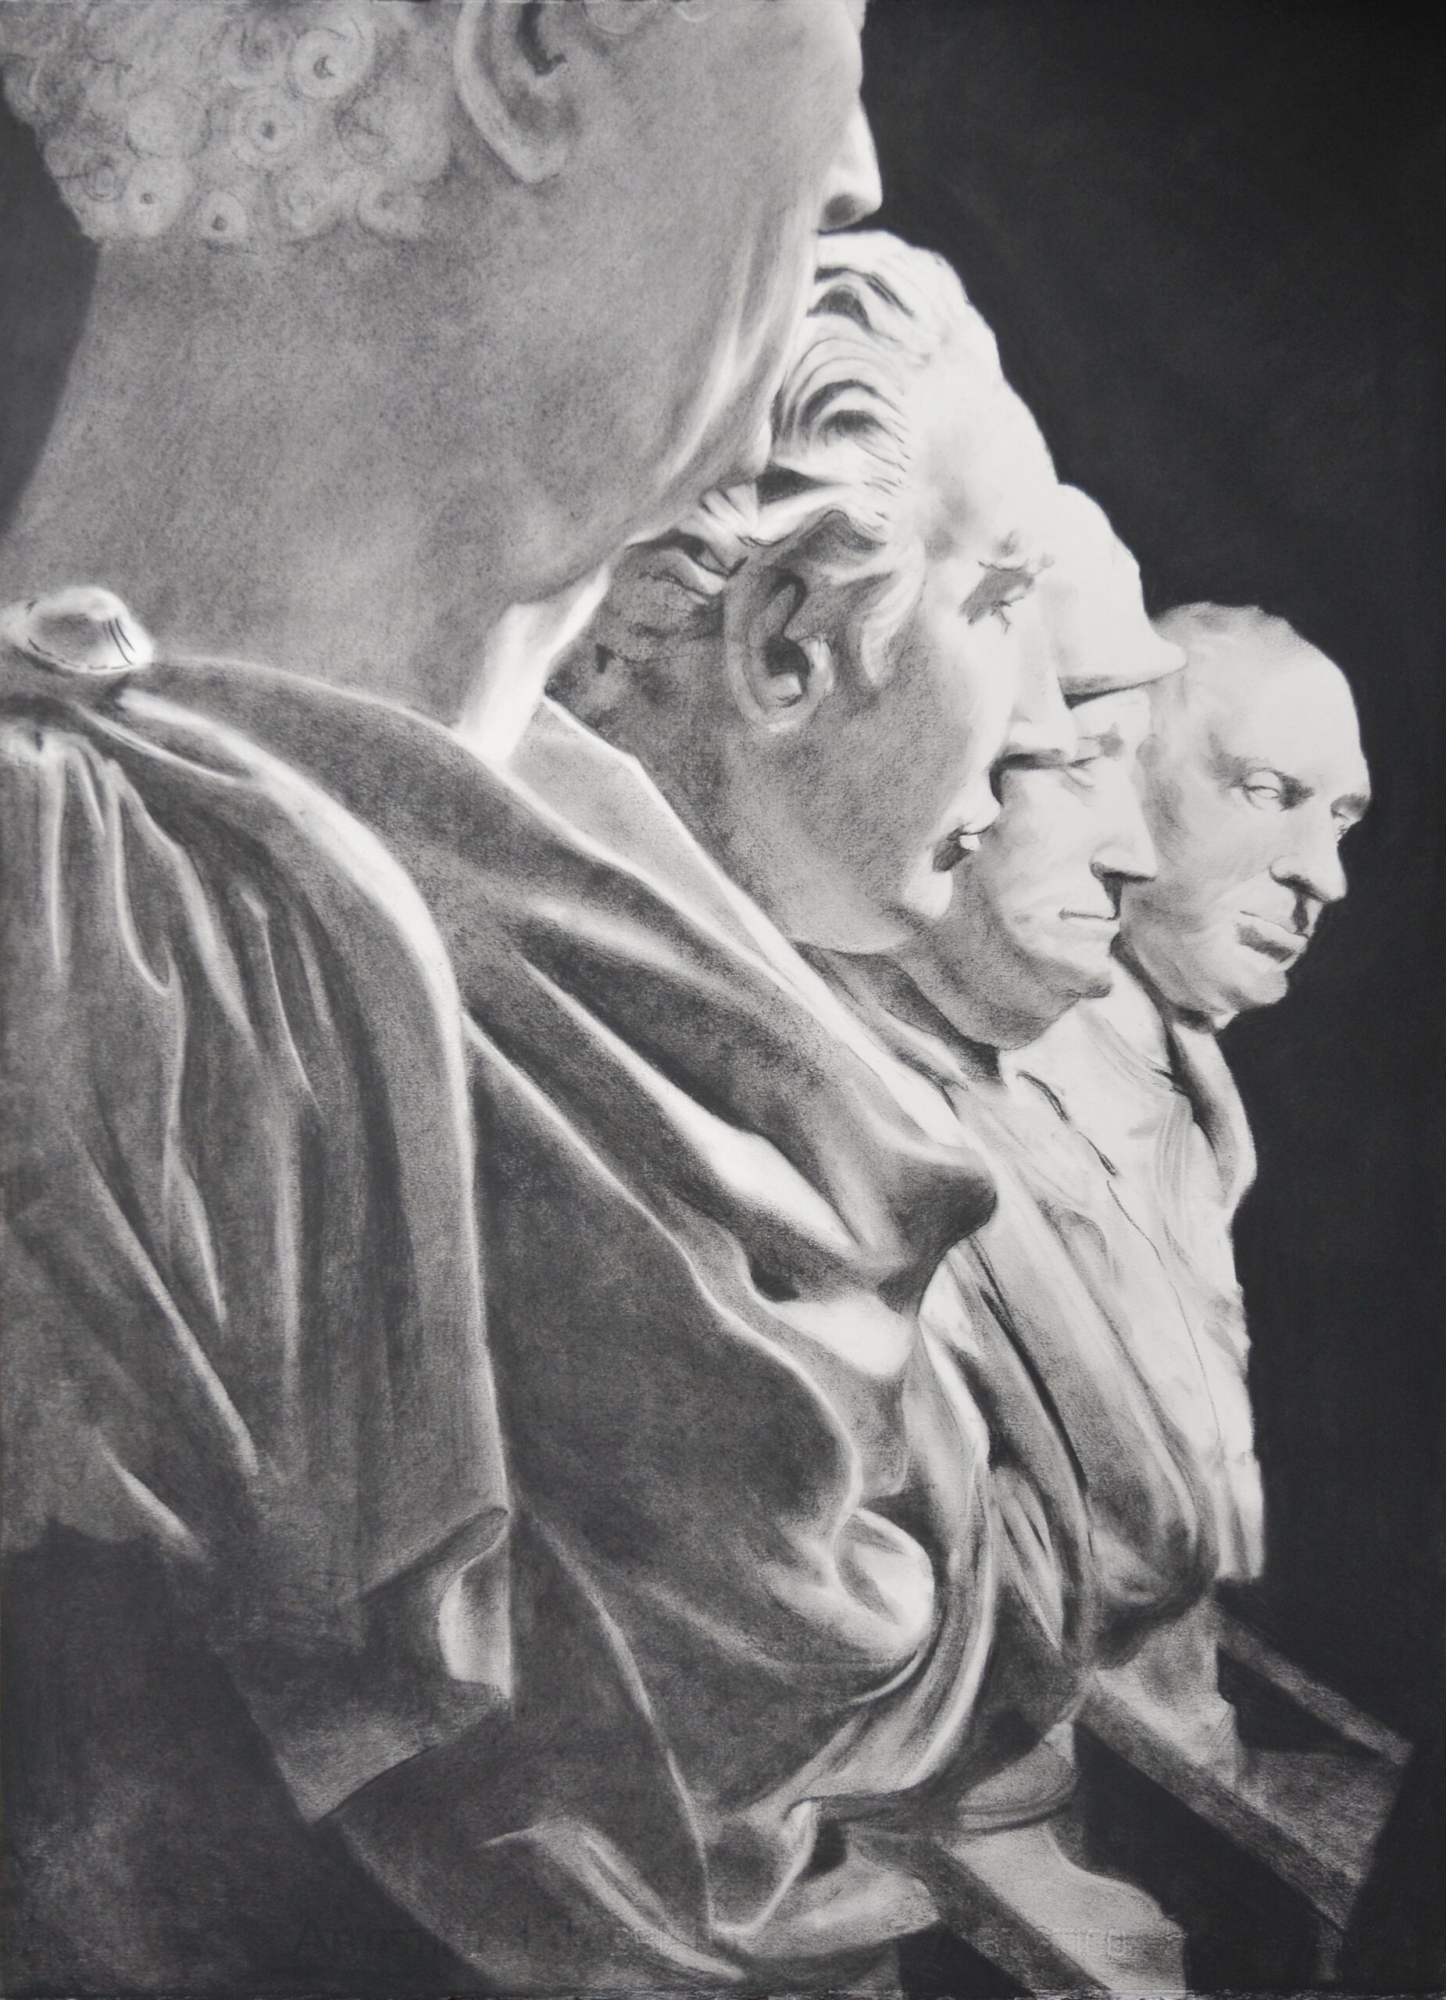 Charcoal drawing of statues at the V&A Museum